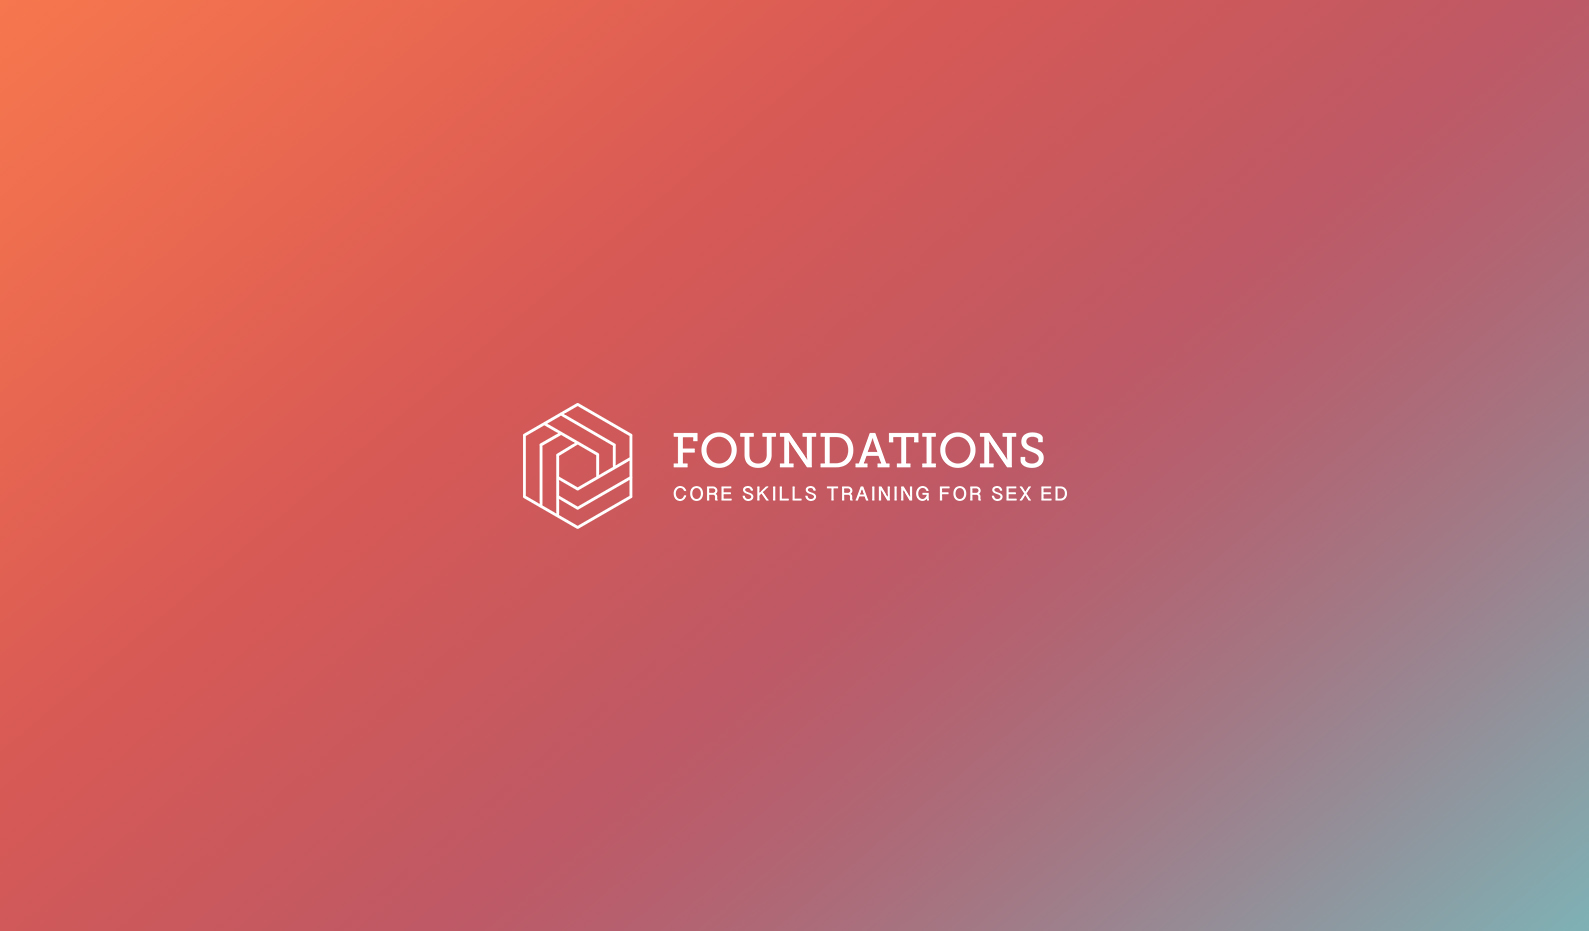 foundations_branding1